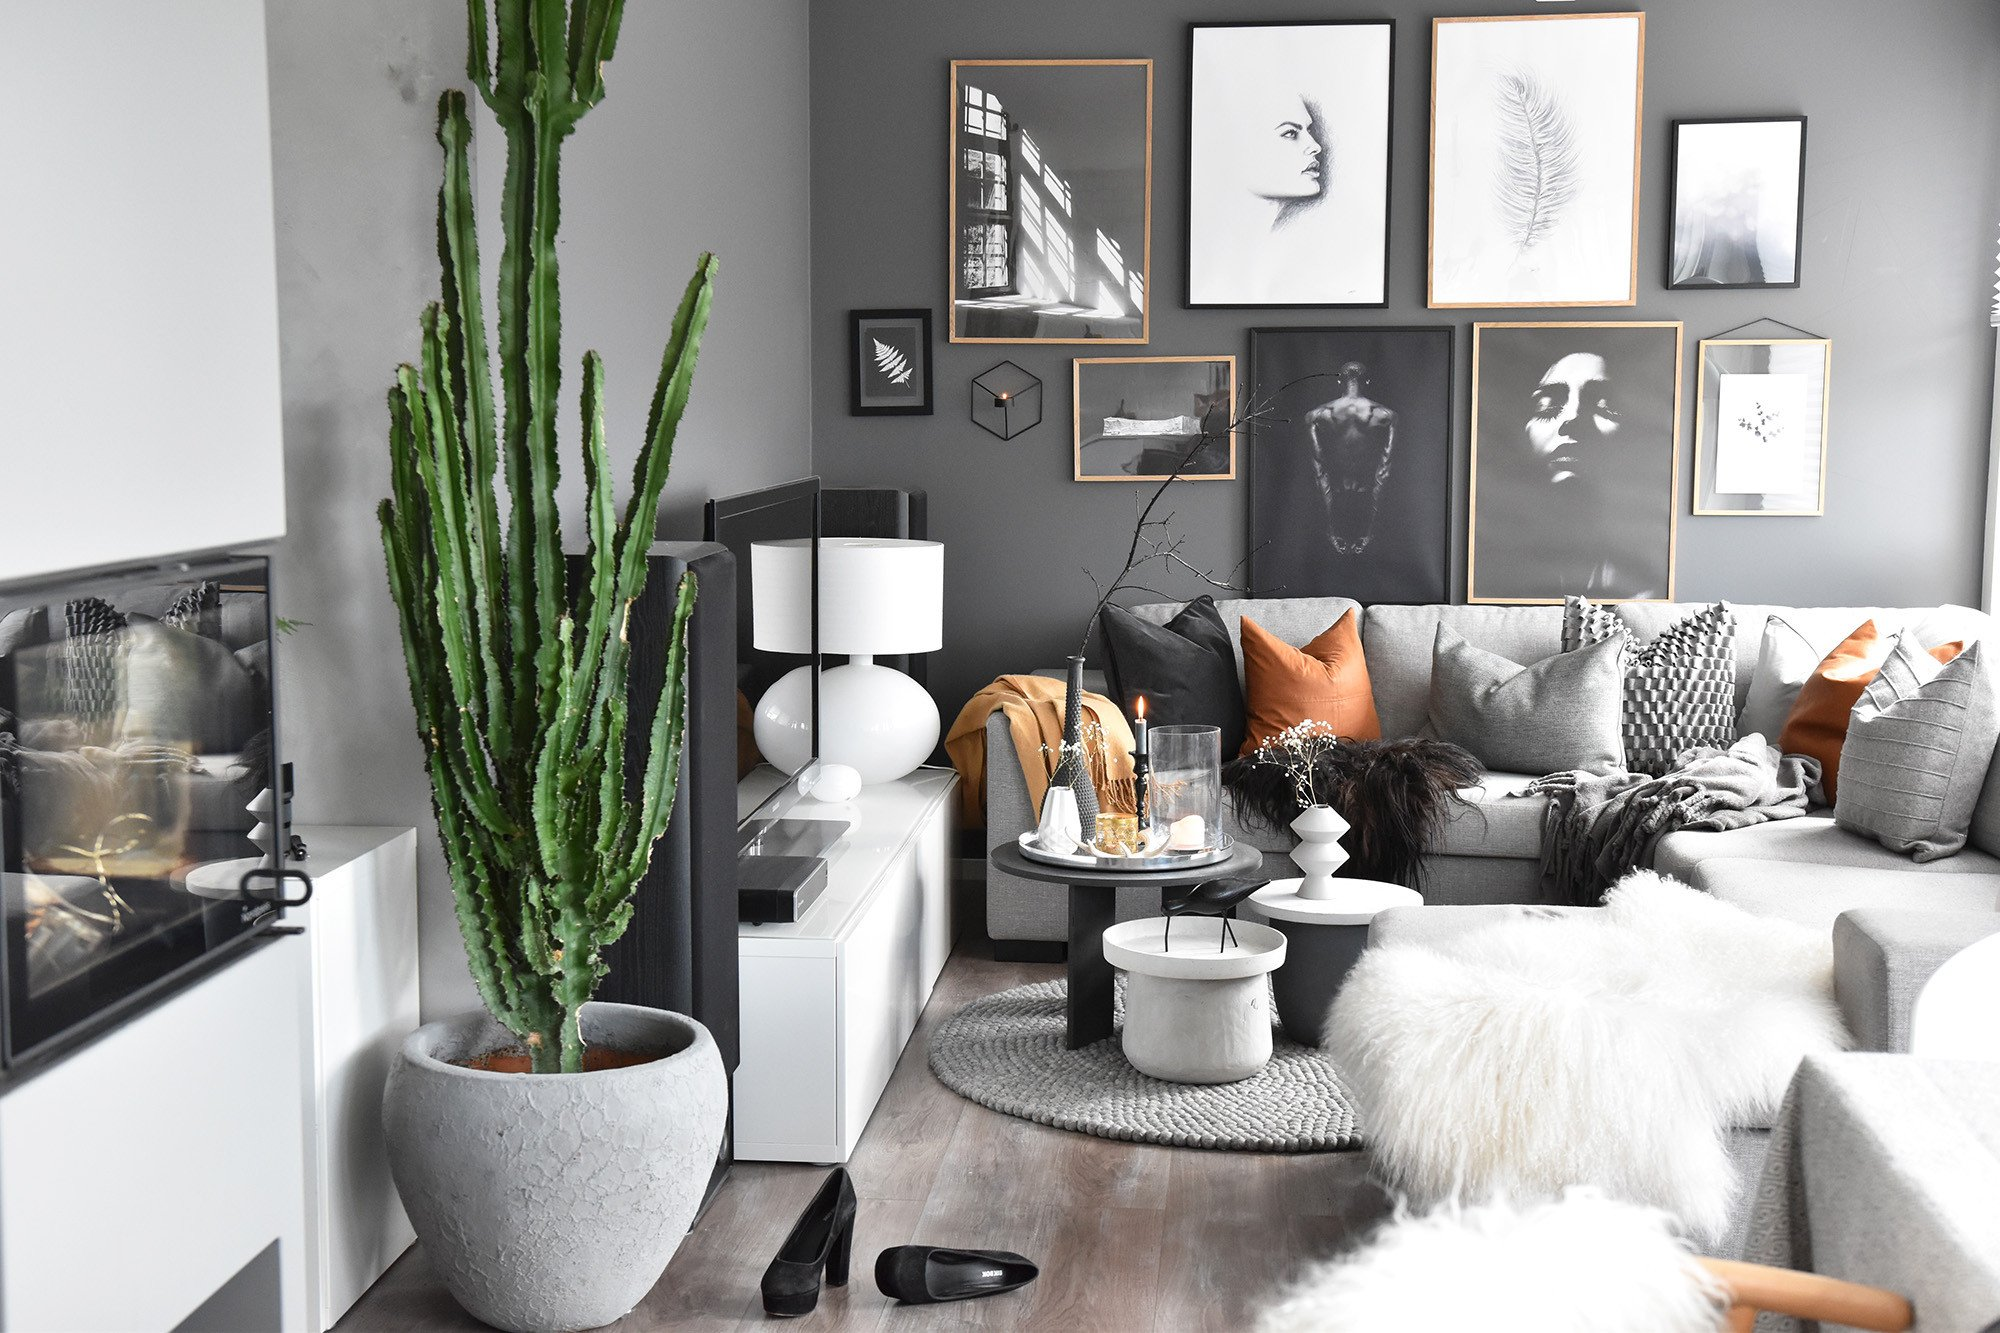 Latest Trends In Home Decor Inspirational 10 Fall Trends the Season S Latest Ideas Decoholic